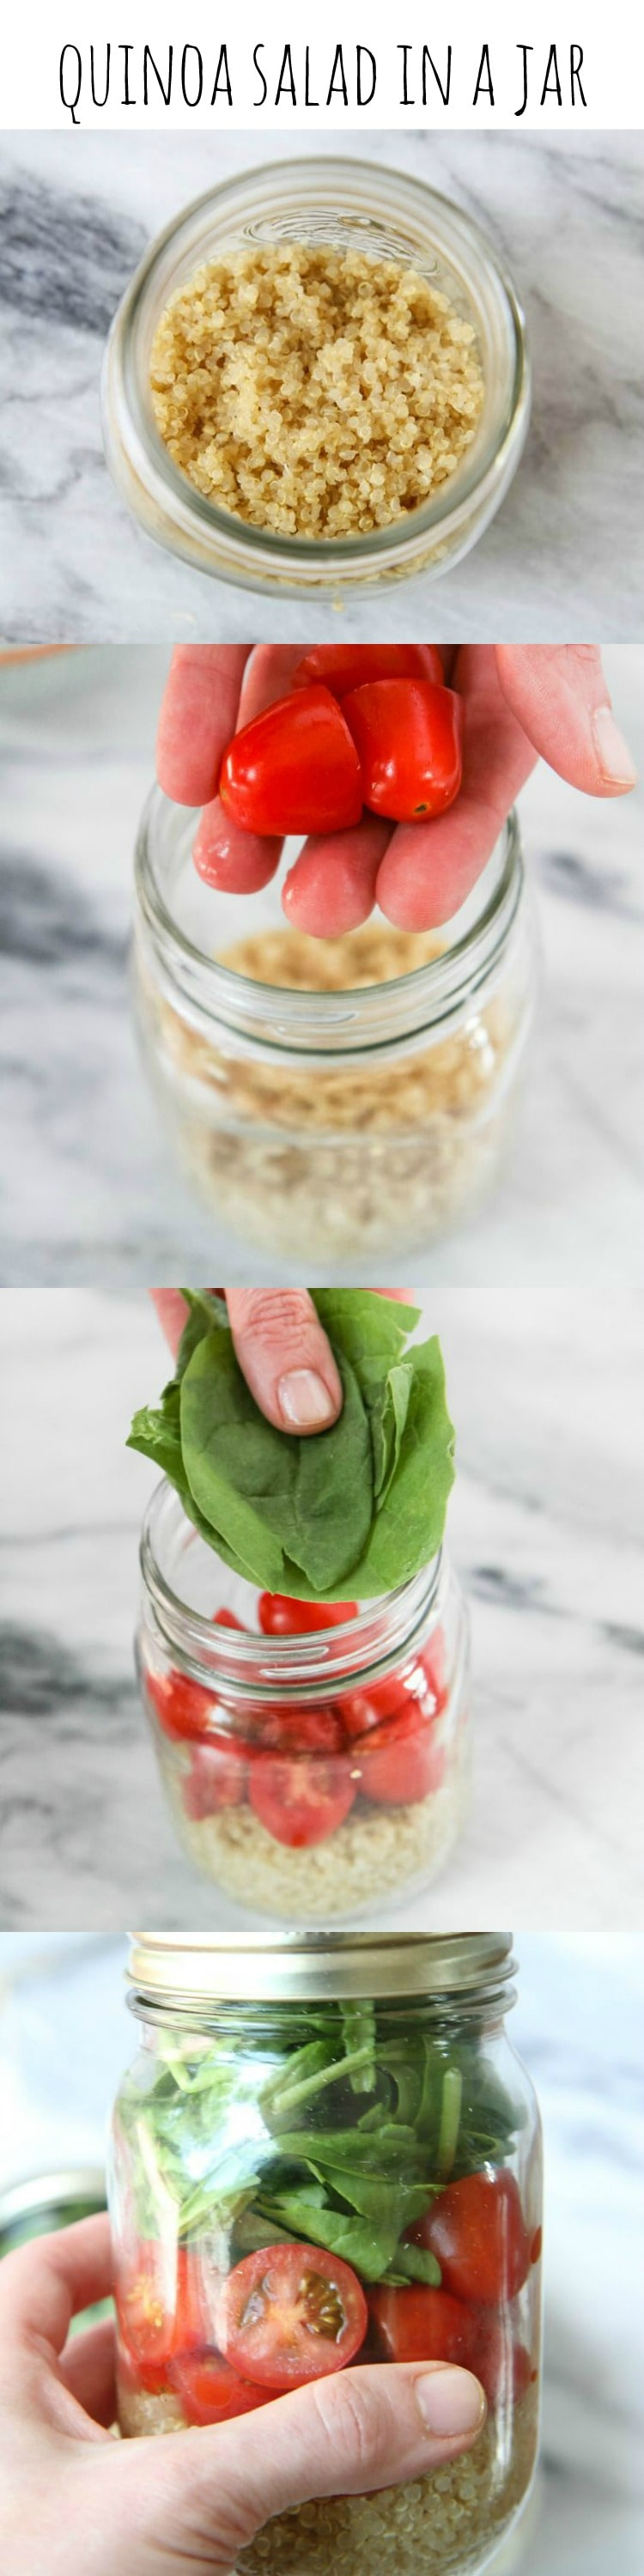 quinoa-salads-in-a-jar-tutorial